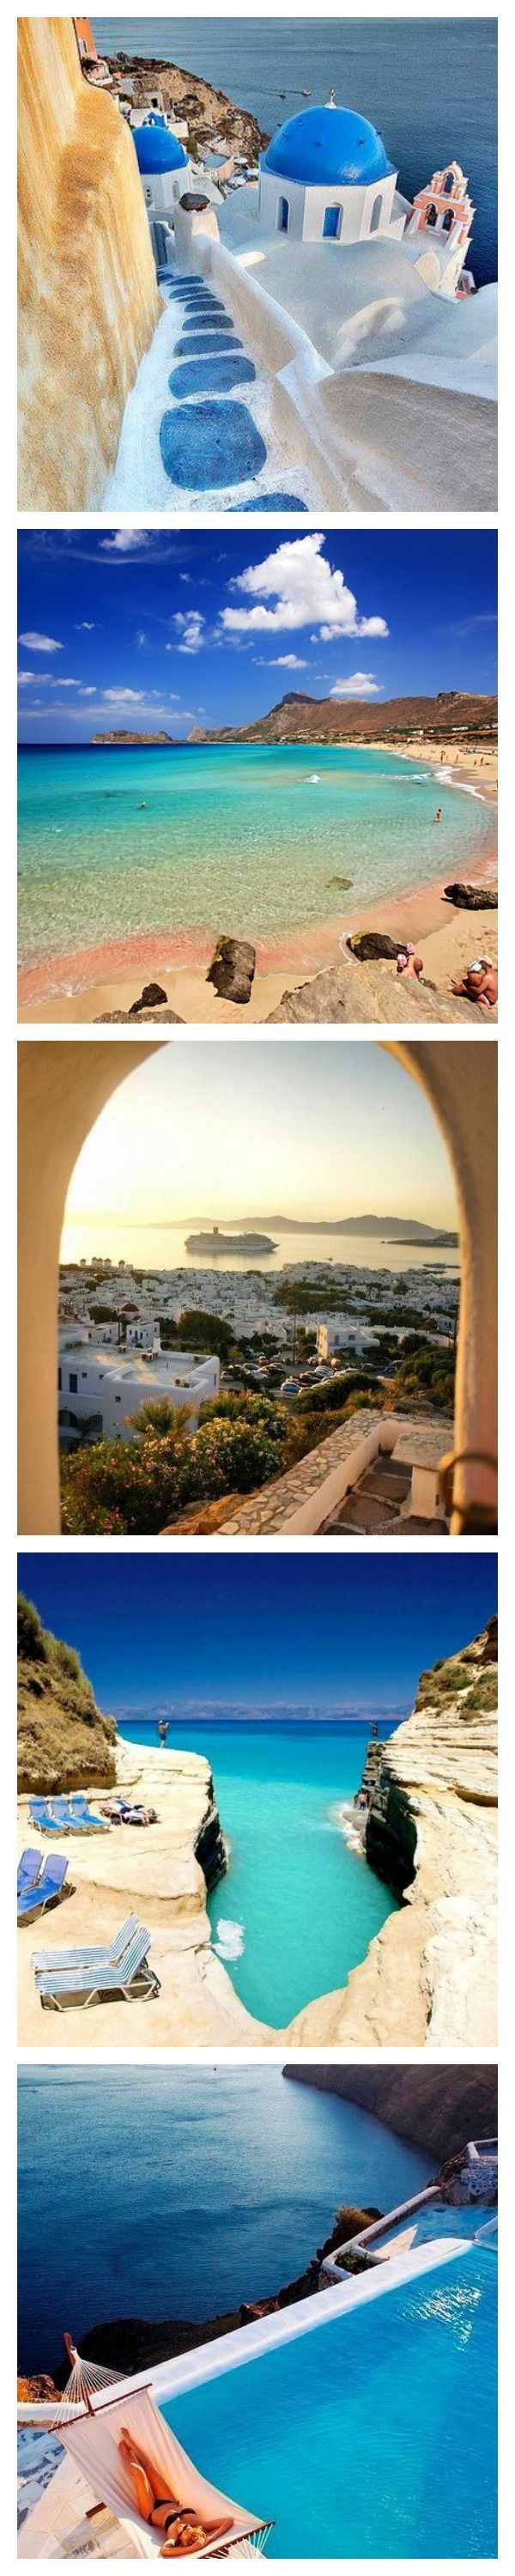 Travel : Top 10 Greek Islands you Should visit in Greece ......Greece brings to its visitors a variety of lovely islands that are rocky, green, or mountainous surrounded by crystal clear waters. With so many islands and beaches that offer serenity and many things to do, it is apparent that Greece has become the most travelled destination.....kur